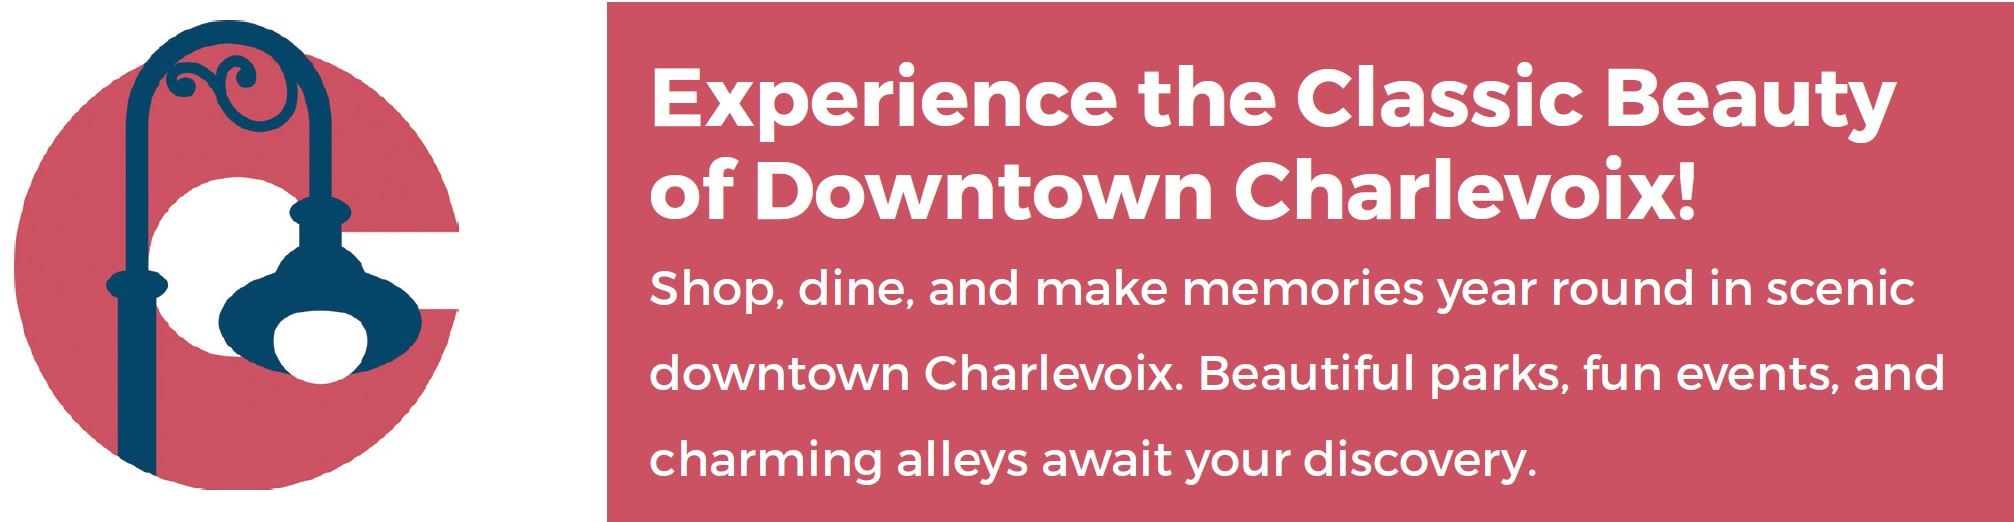 Experience Downtown Charlevoix